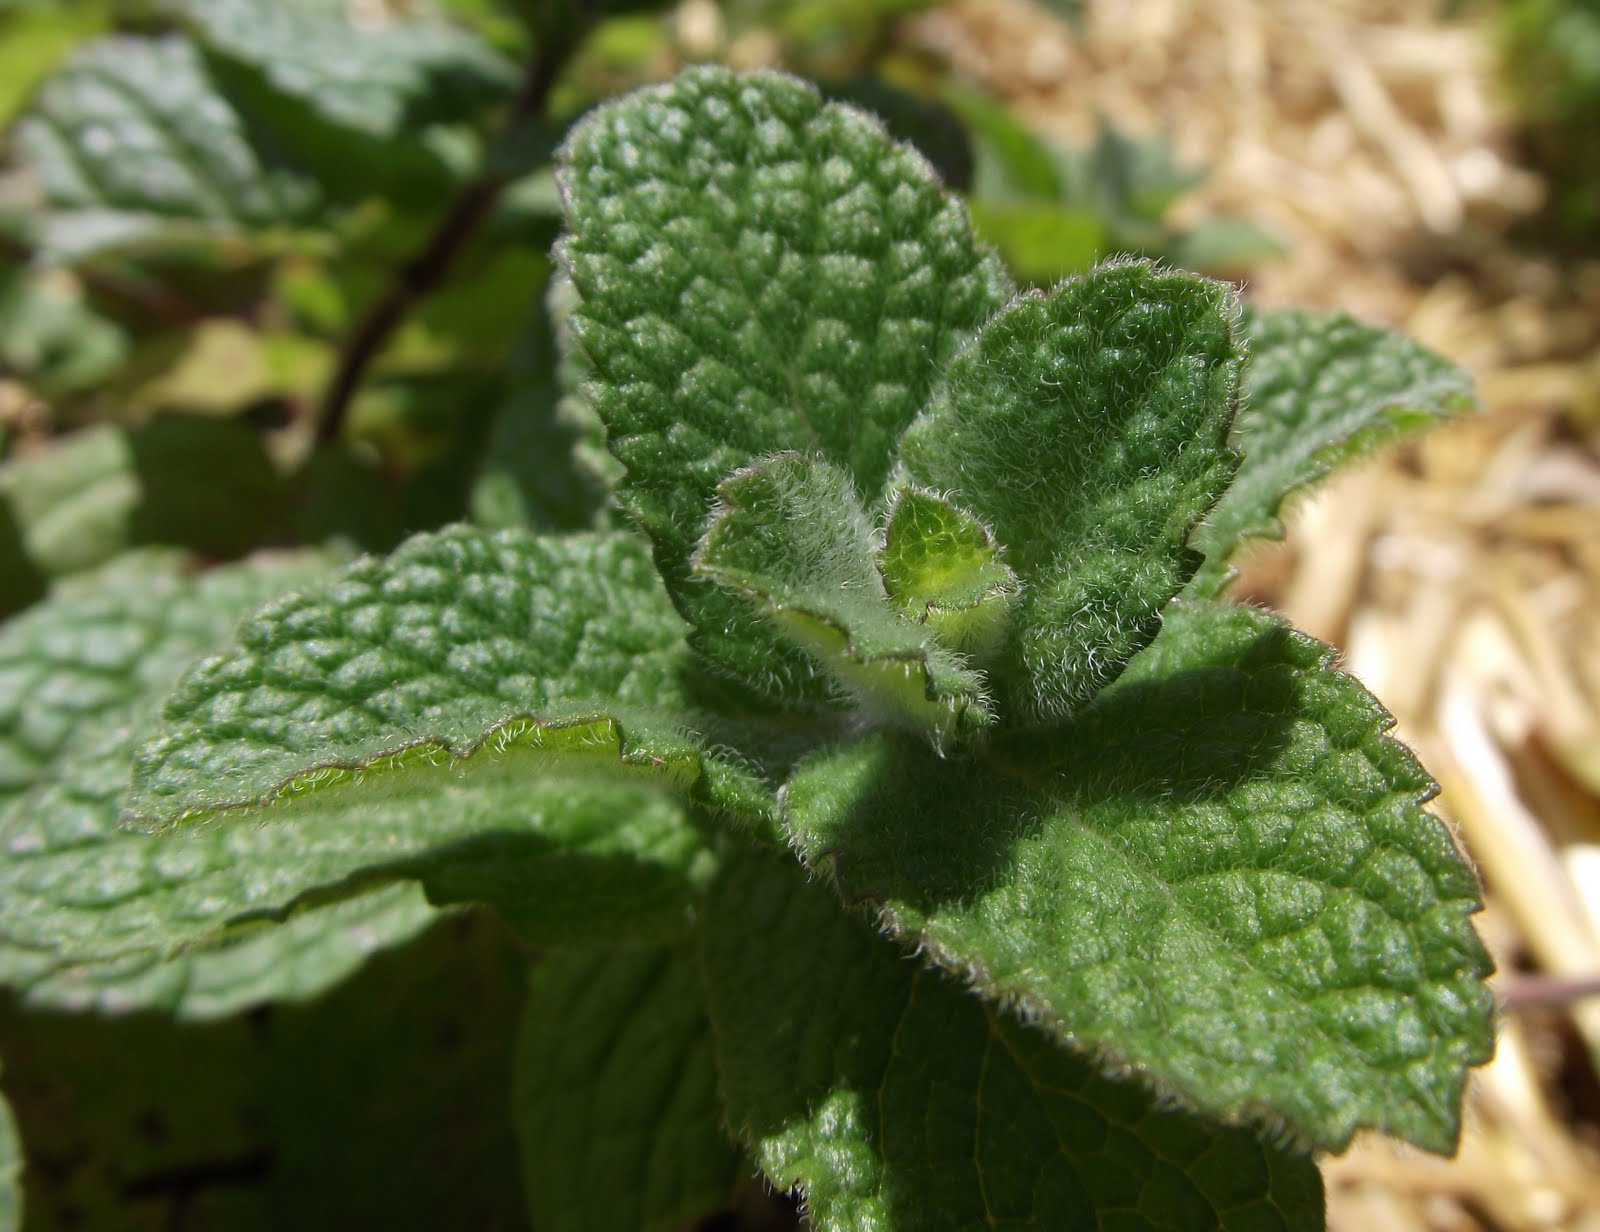 Http Tcpermaculture Blogspot Com 2012 01 Permaculture Plants Mint Html